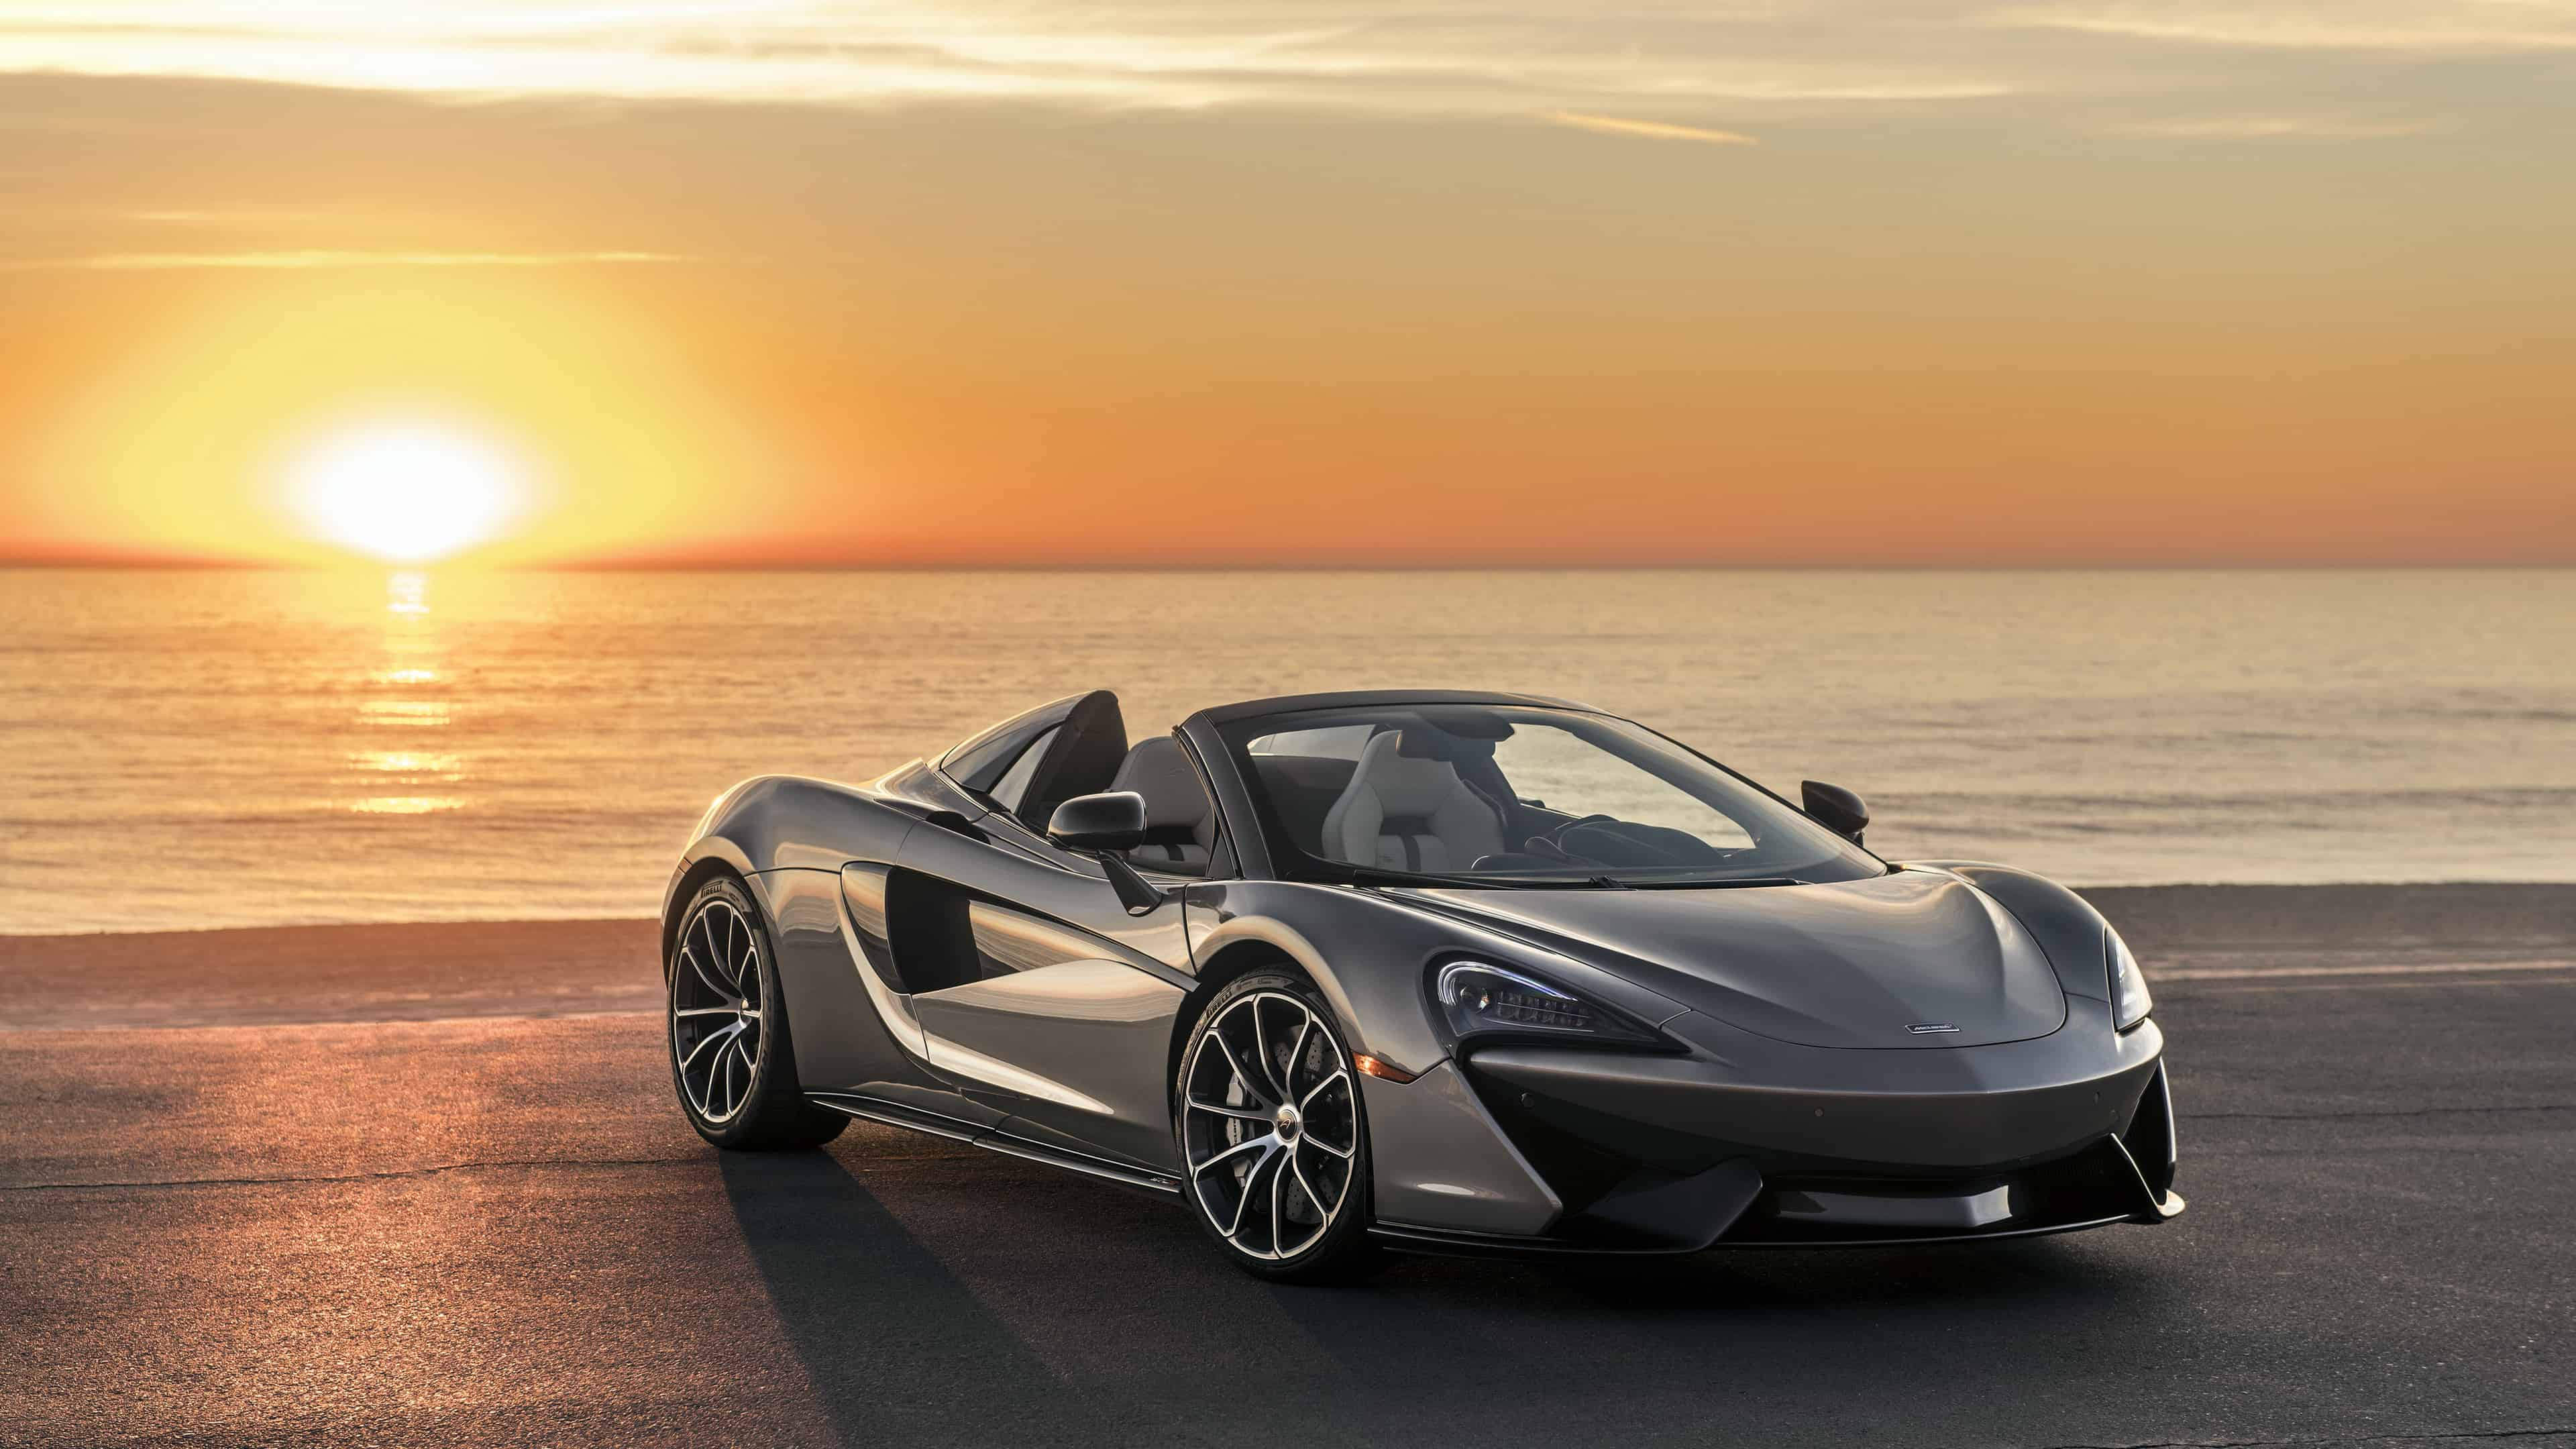 McLaren 570S Spider Grey UHD 4K Wallpaper Pixelz 3840x2160